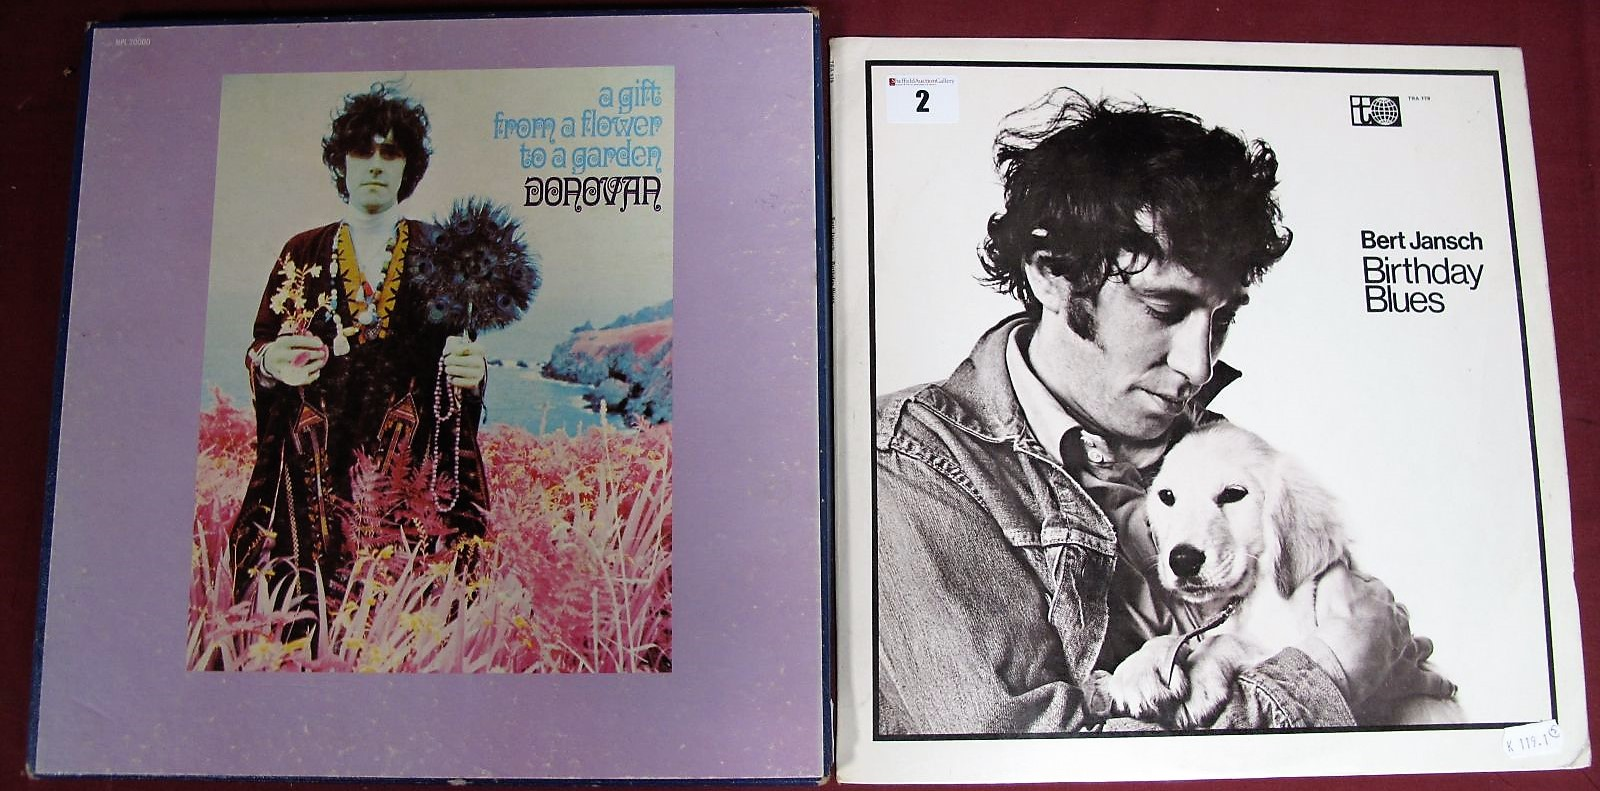 Lot 2 - Donovan - 'A Gift From a Flower to a Garden' (1968, Pye Mono NPL 20000, two LP boxed set with